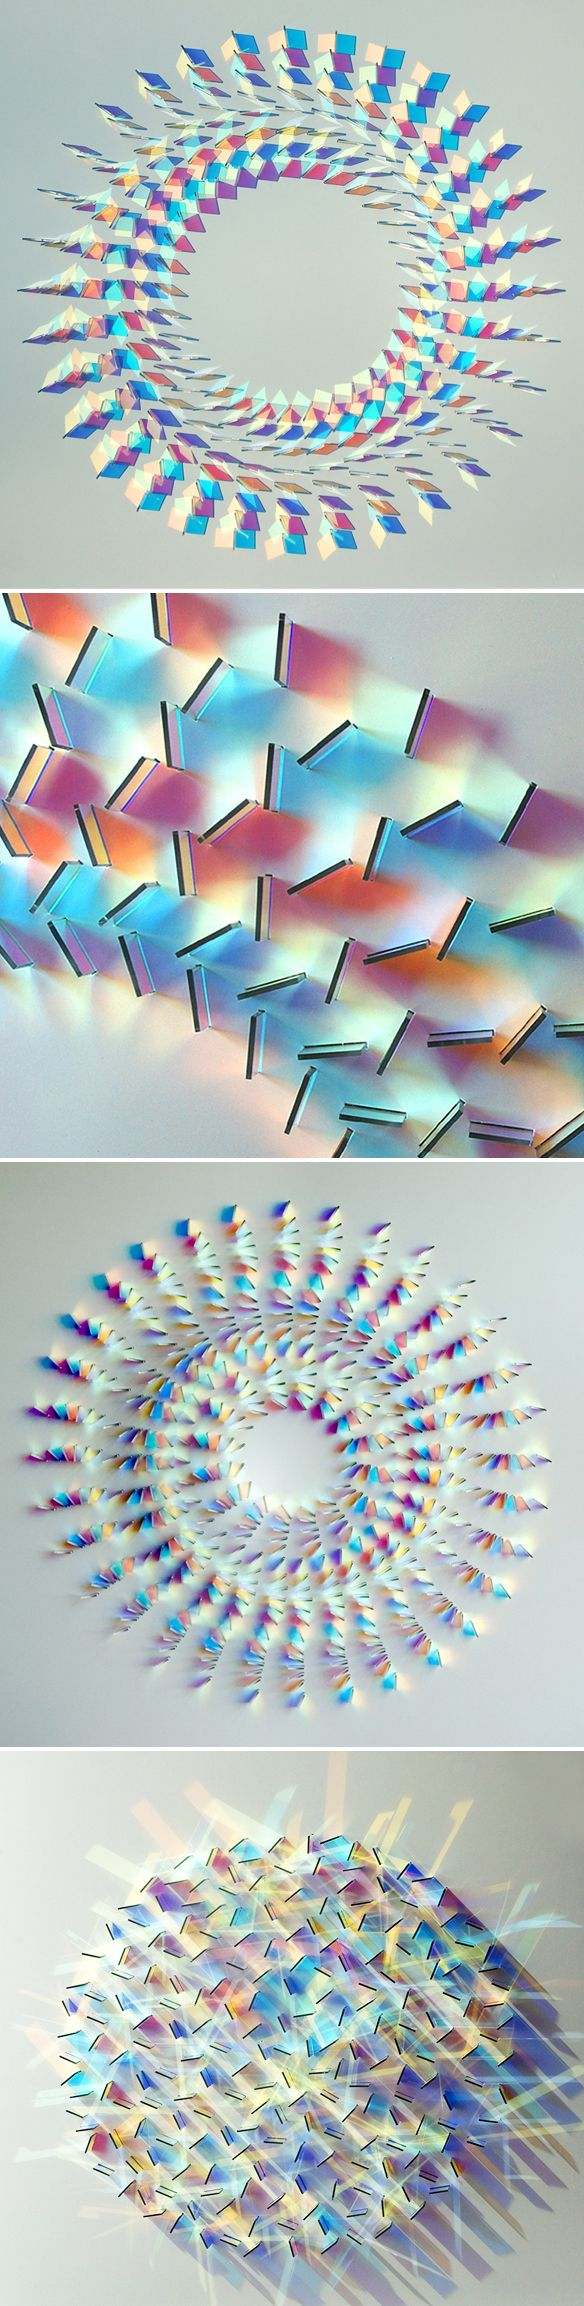 Dichroic glass wall panel installations | Chris Wood | Jesus' name means: 'JEHOVAH is Salvation.' (The Catholic Encyclopaedia 1913 vol. viii p. 329) Jehovah is the Father and God of Christ Jesus (Please read Psalm 83:18; Luke 1:32; John 20:17) 💕 For truth please visit JW.ORG